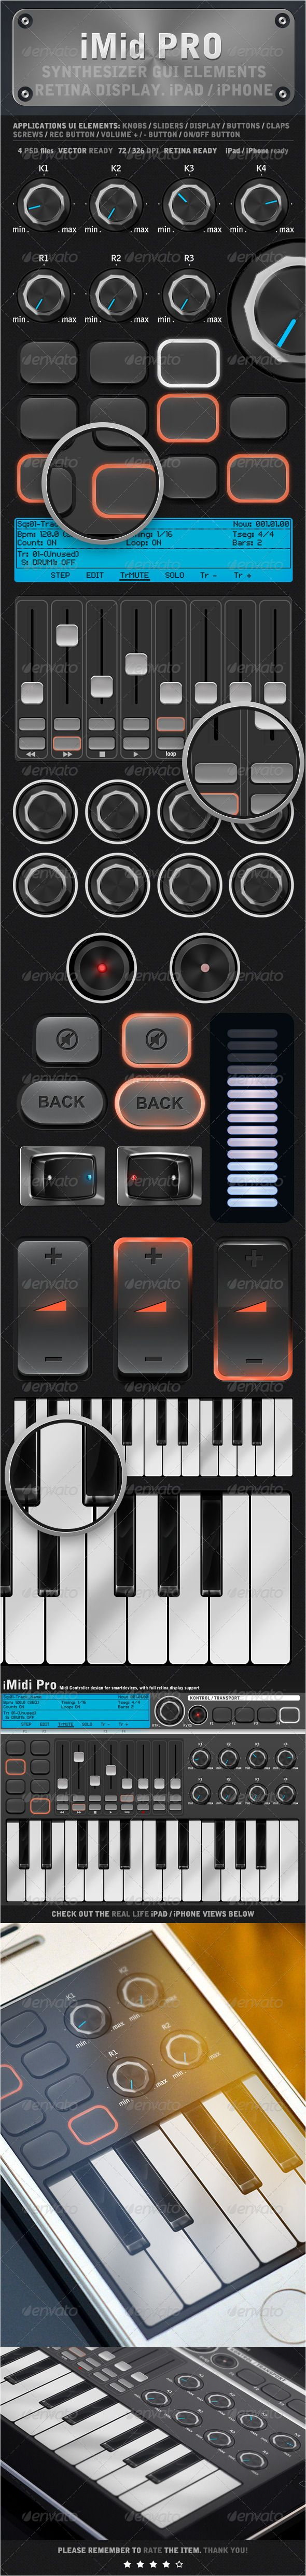 DescriptioniMidi PRO / iPhone UI Elements is the last out of 3 UI versions upcoming next. The gorgeous iMidi PRO is the perfect